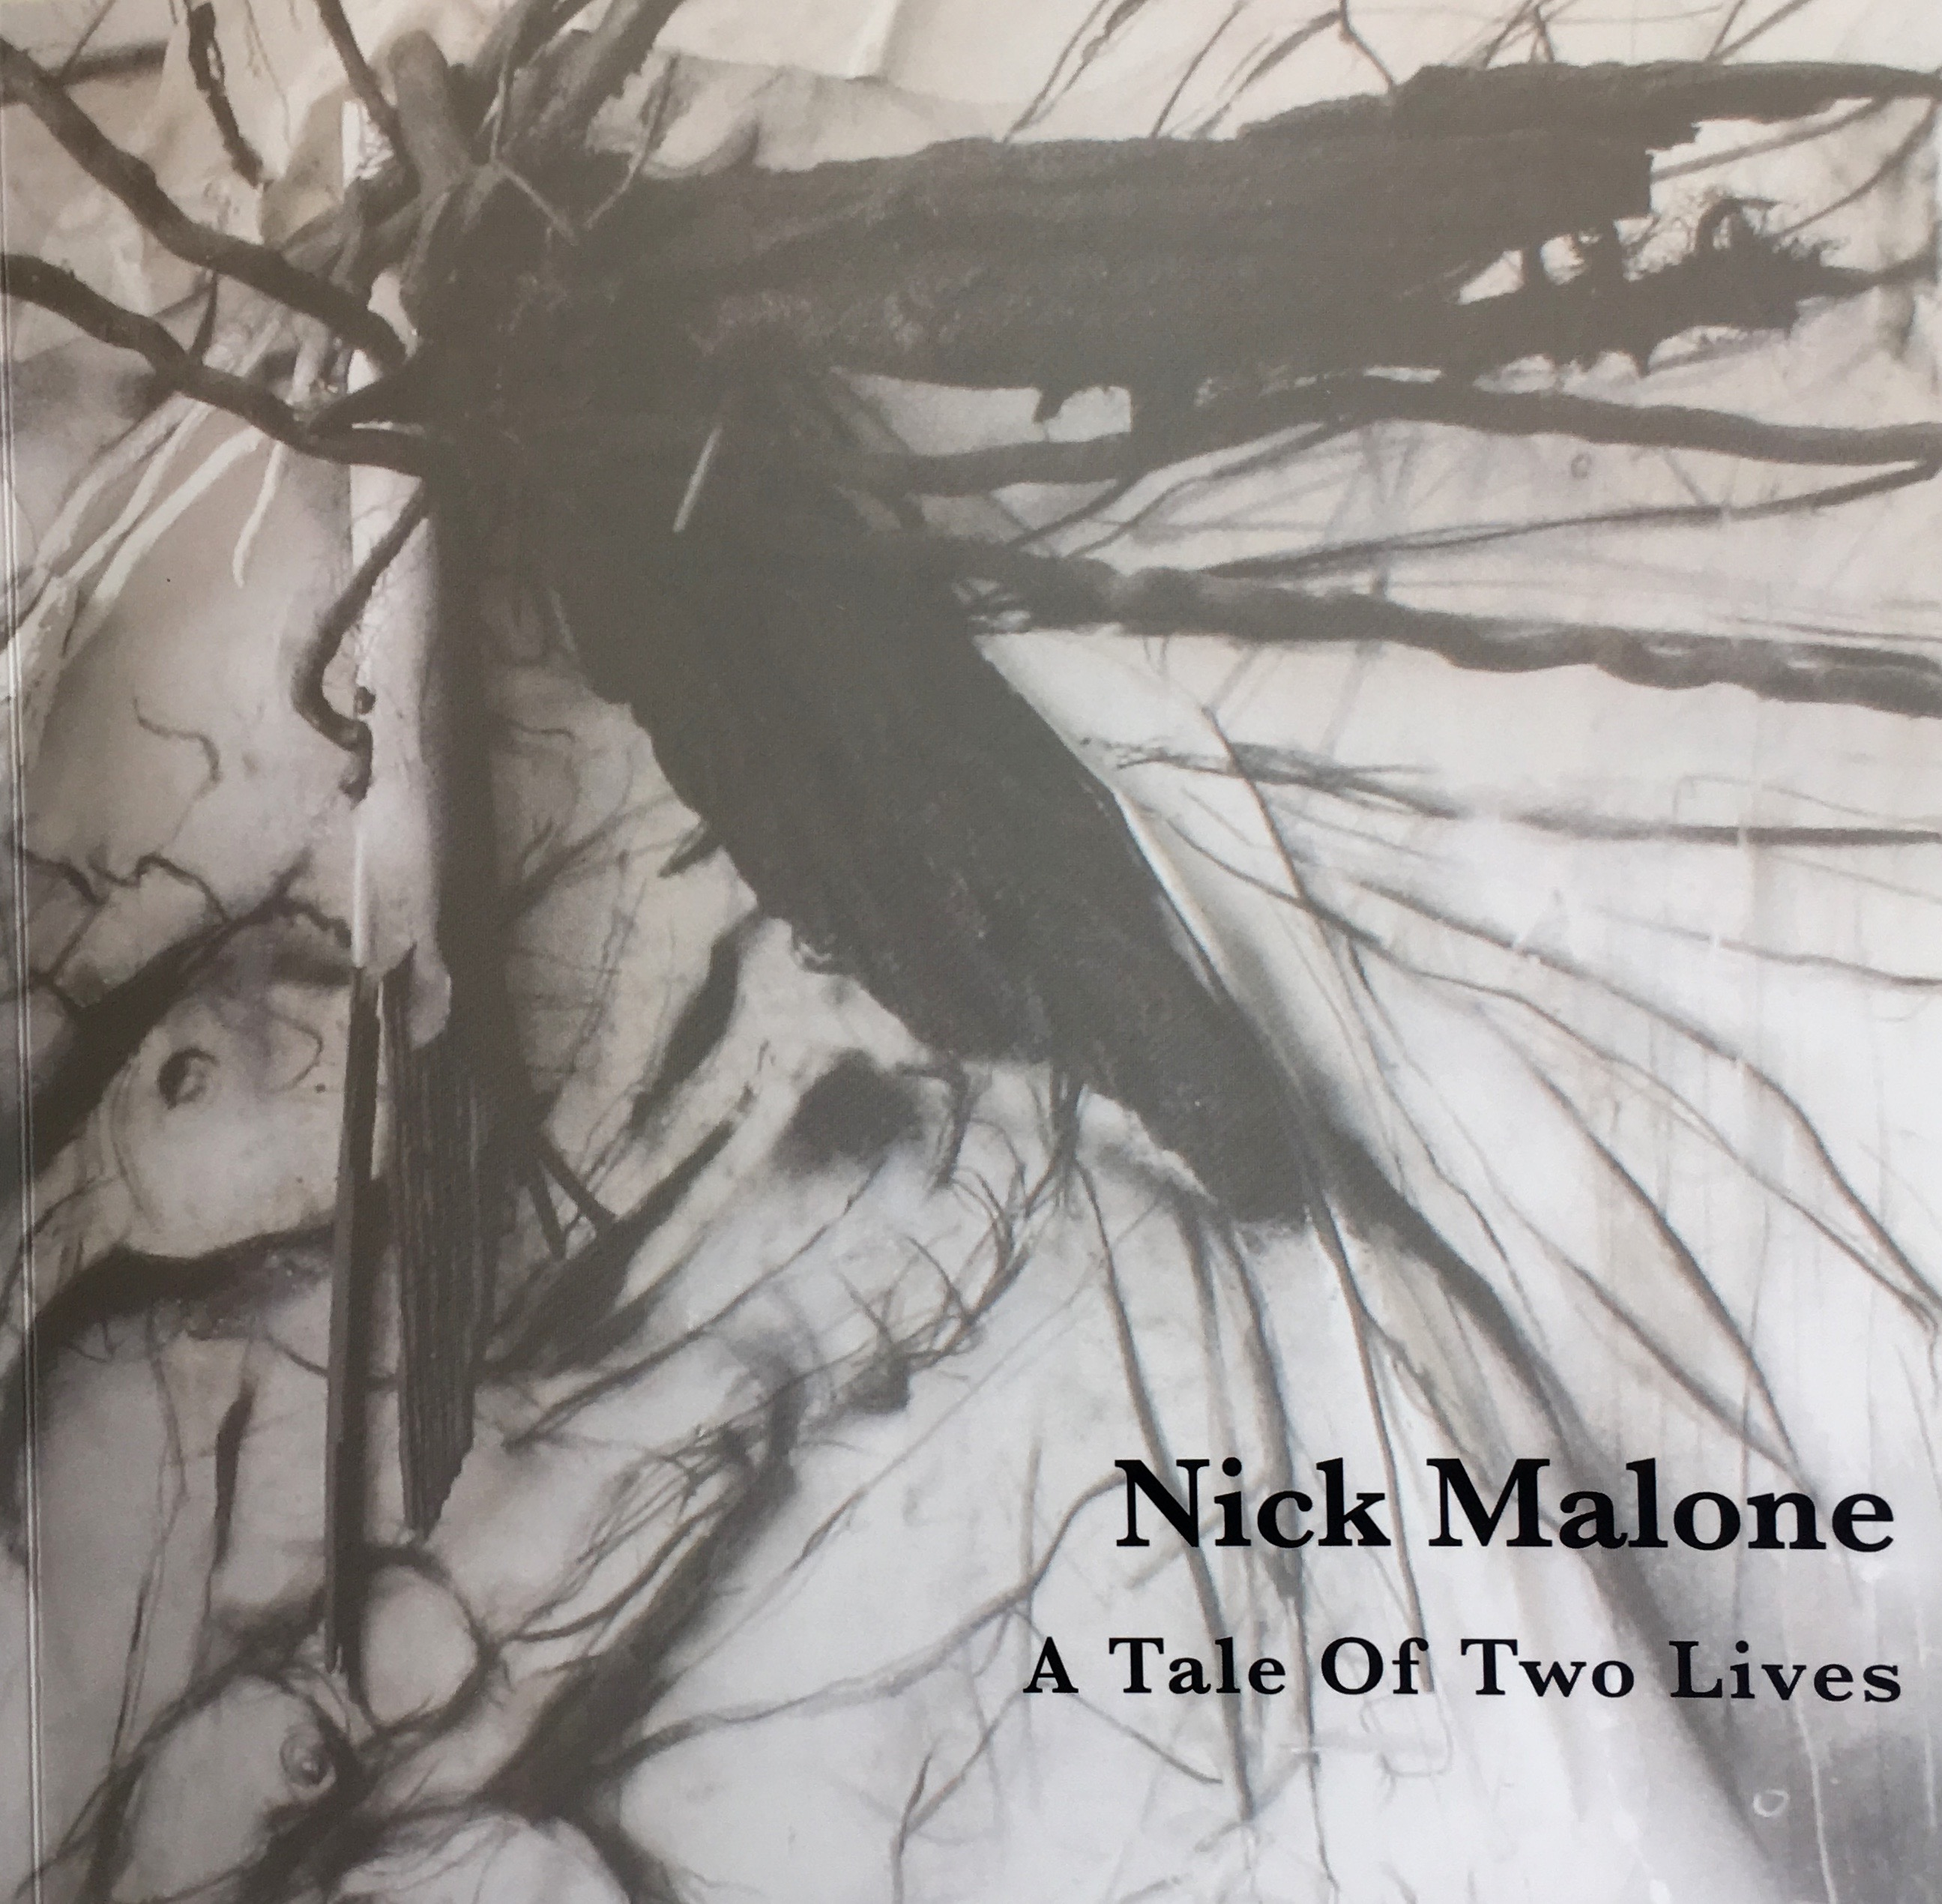 Nick Malone | A Tale of Two Lives